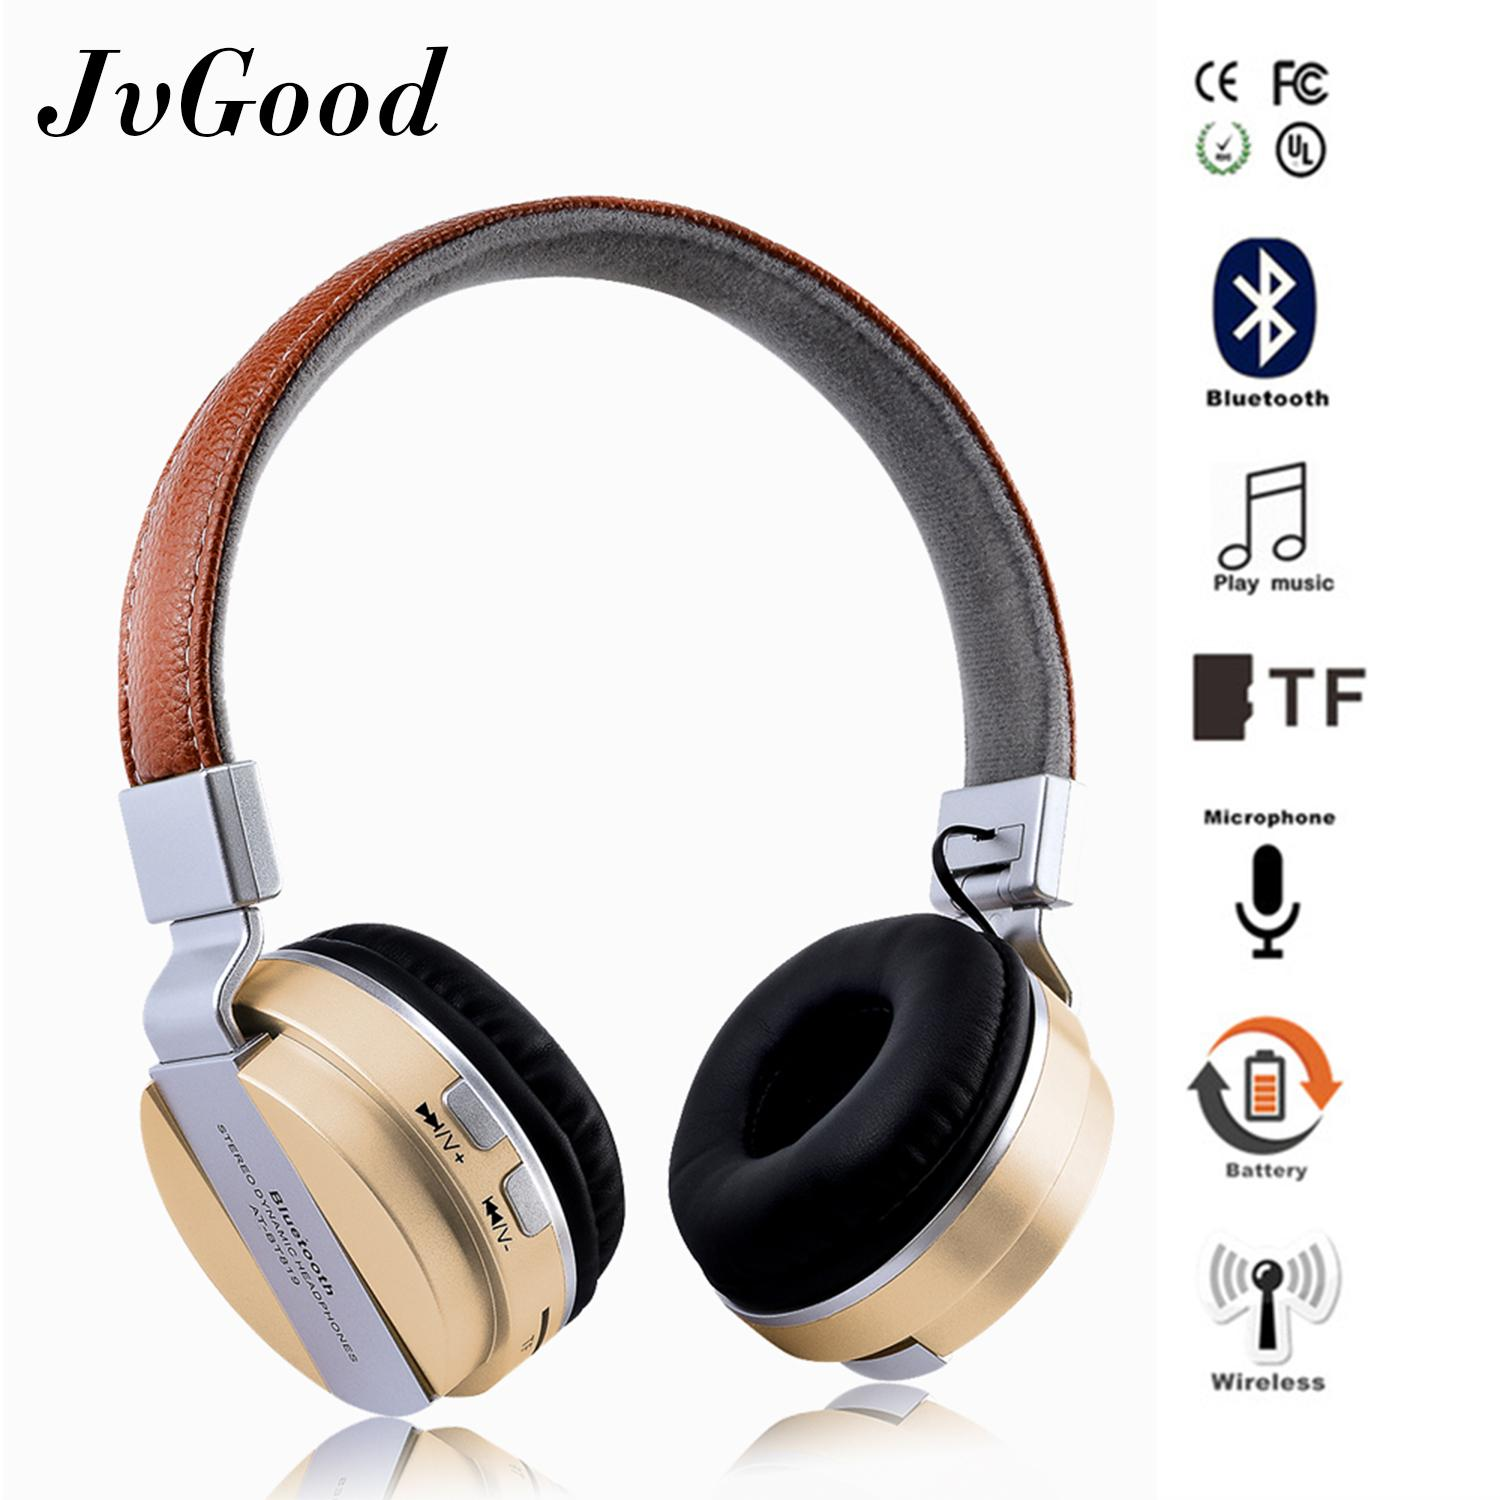 Price Jvgood Wireless Bluetooth Headphone Foldable Leather Sport Headset With Fm Radio Aux Tf Card Mp3 Smart Phones Tablets China